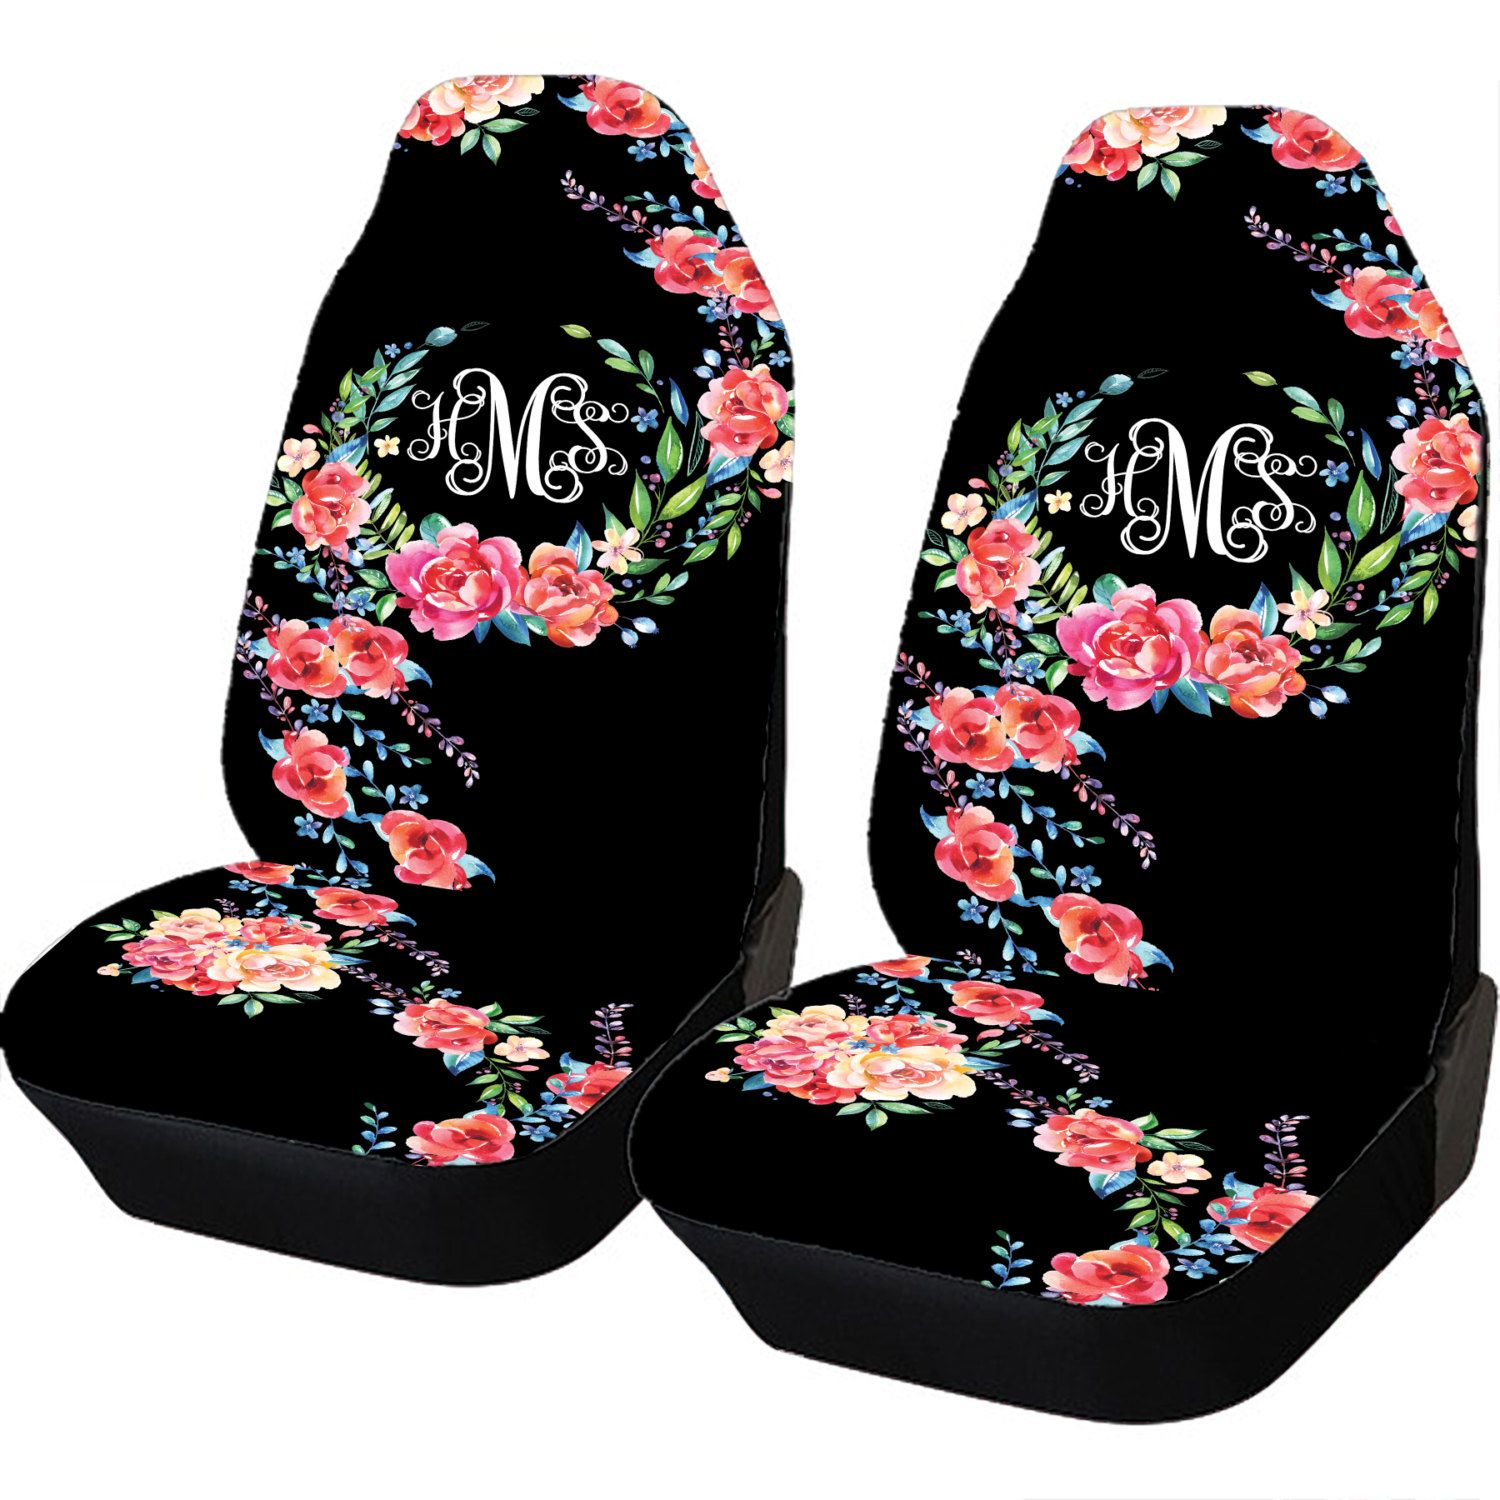 Groovy Classy Black Floral Car Seat Covers Set Of Two Front Seat Pdpeps Interior Chair Design Pdpepsorg